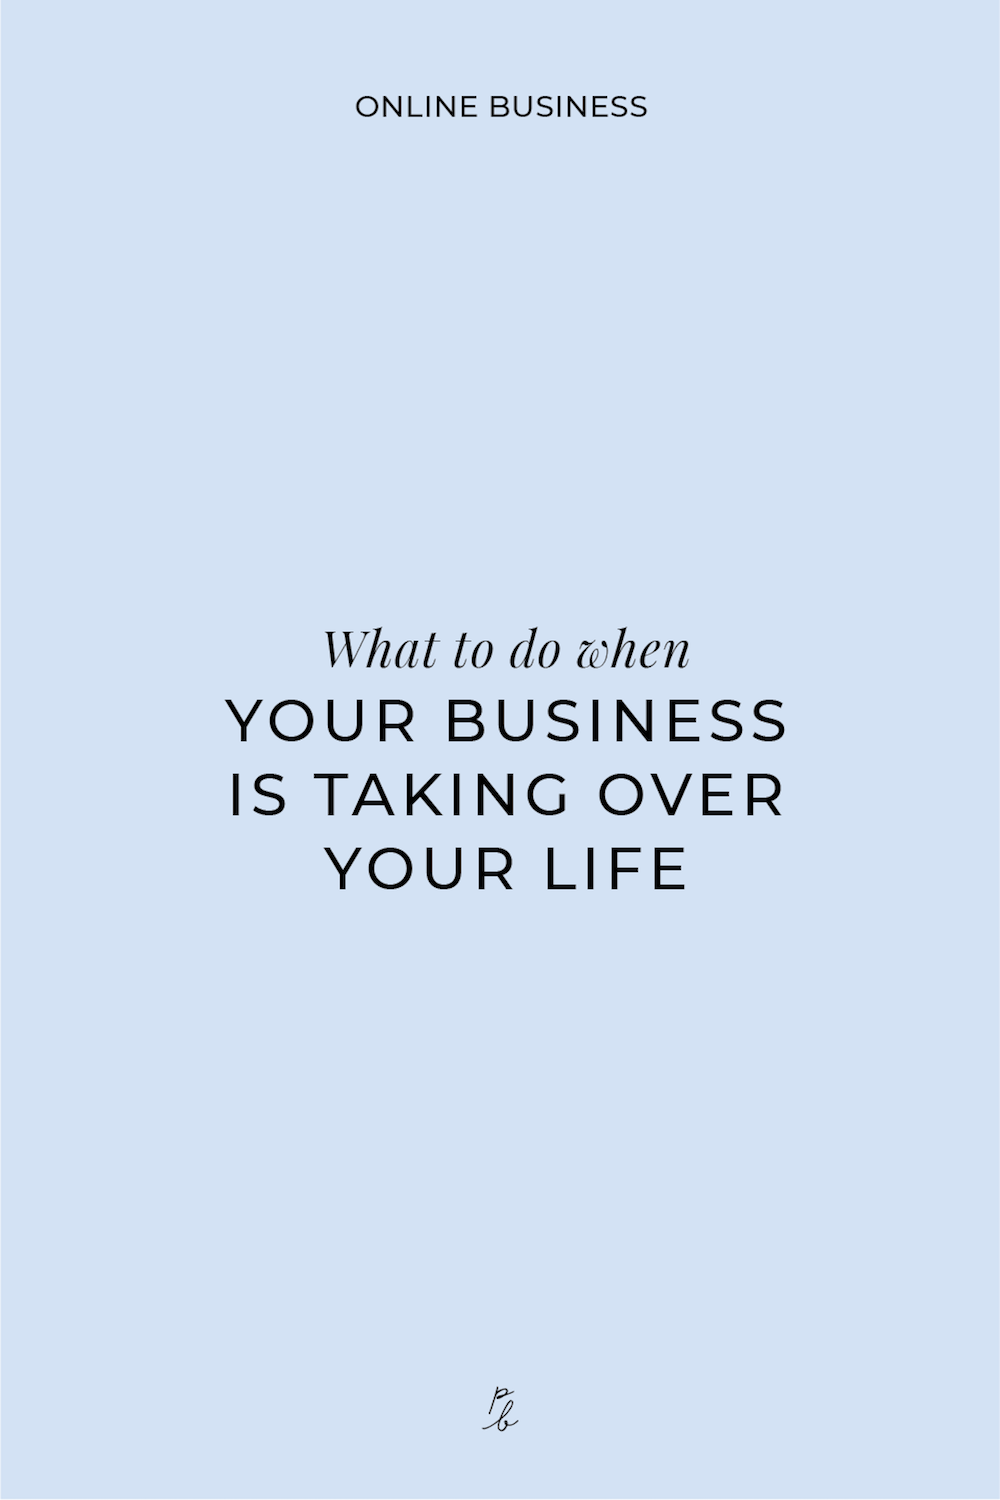 What to do when your business is taking over your life.